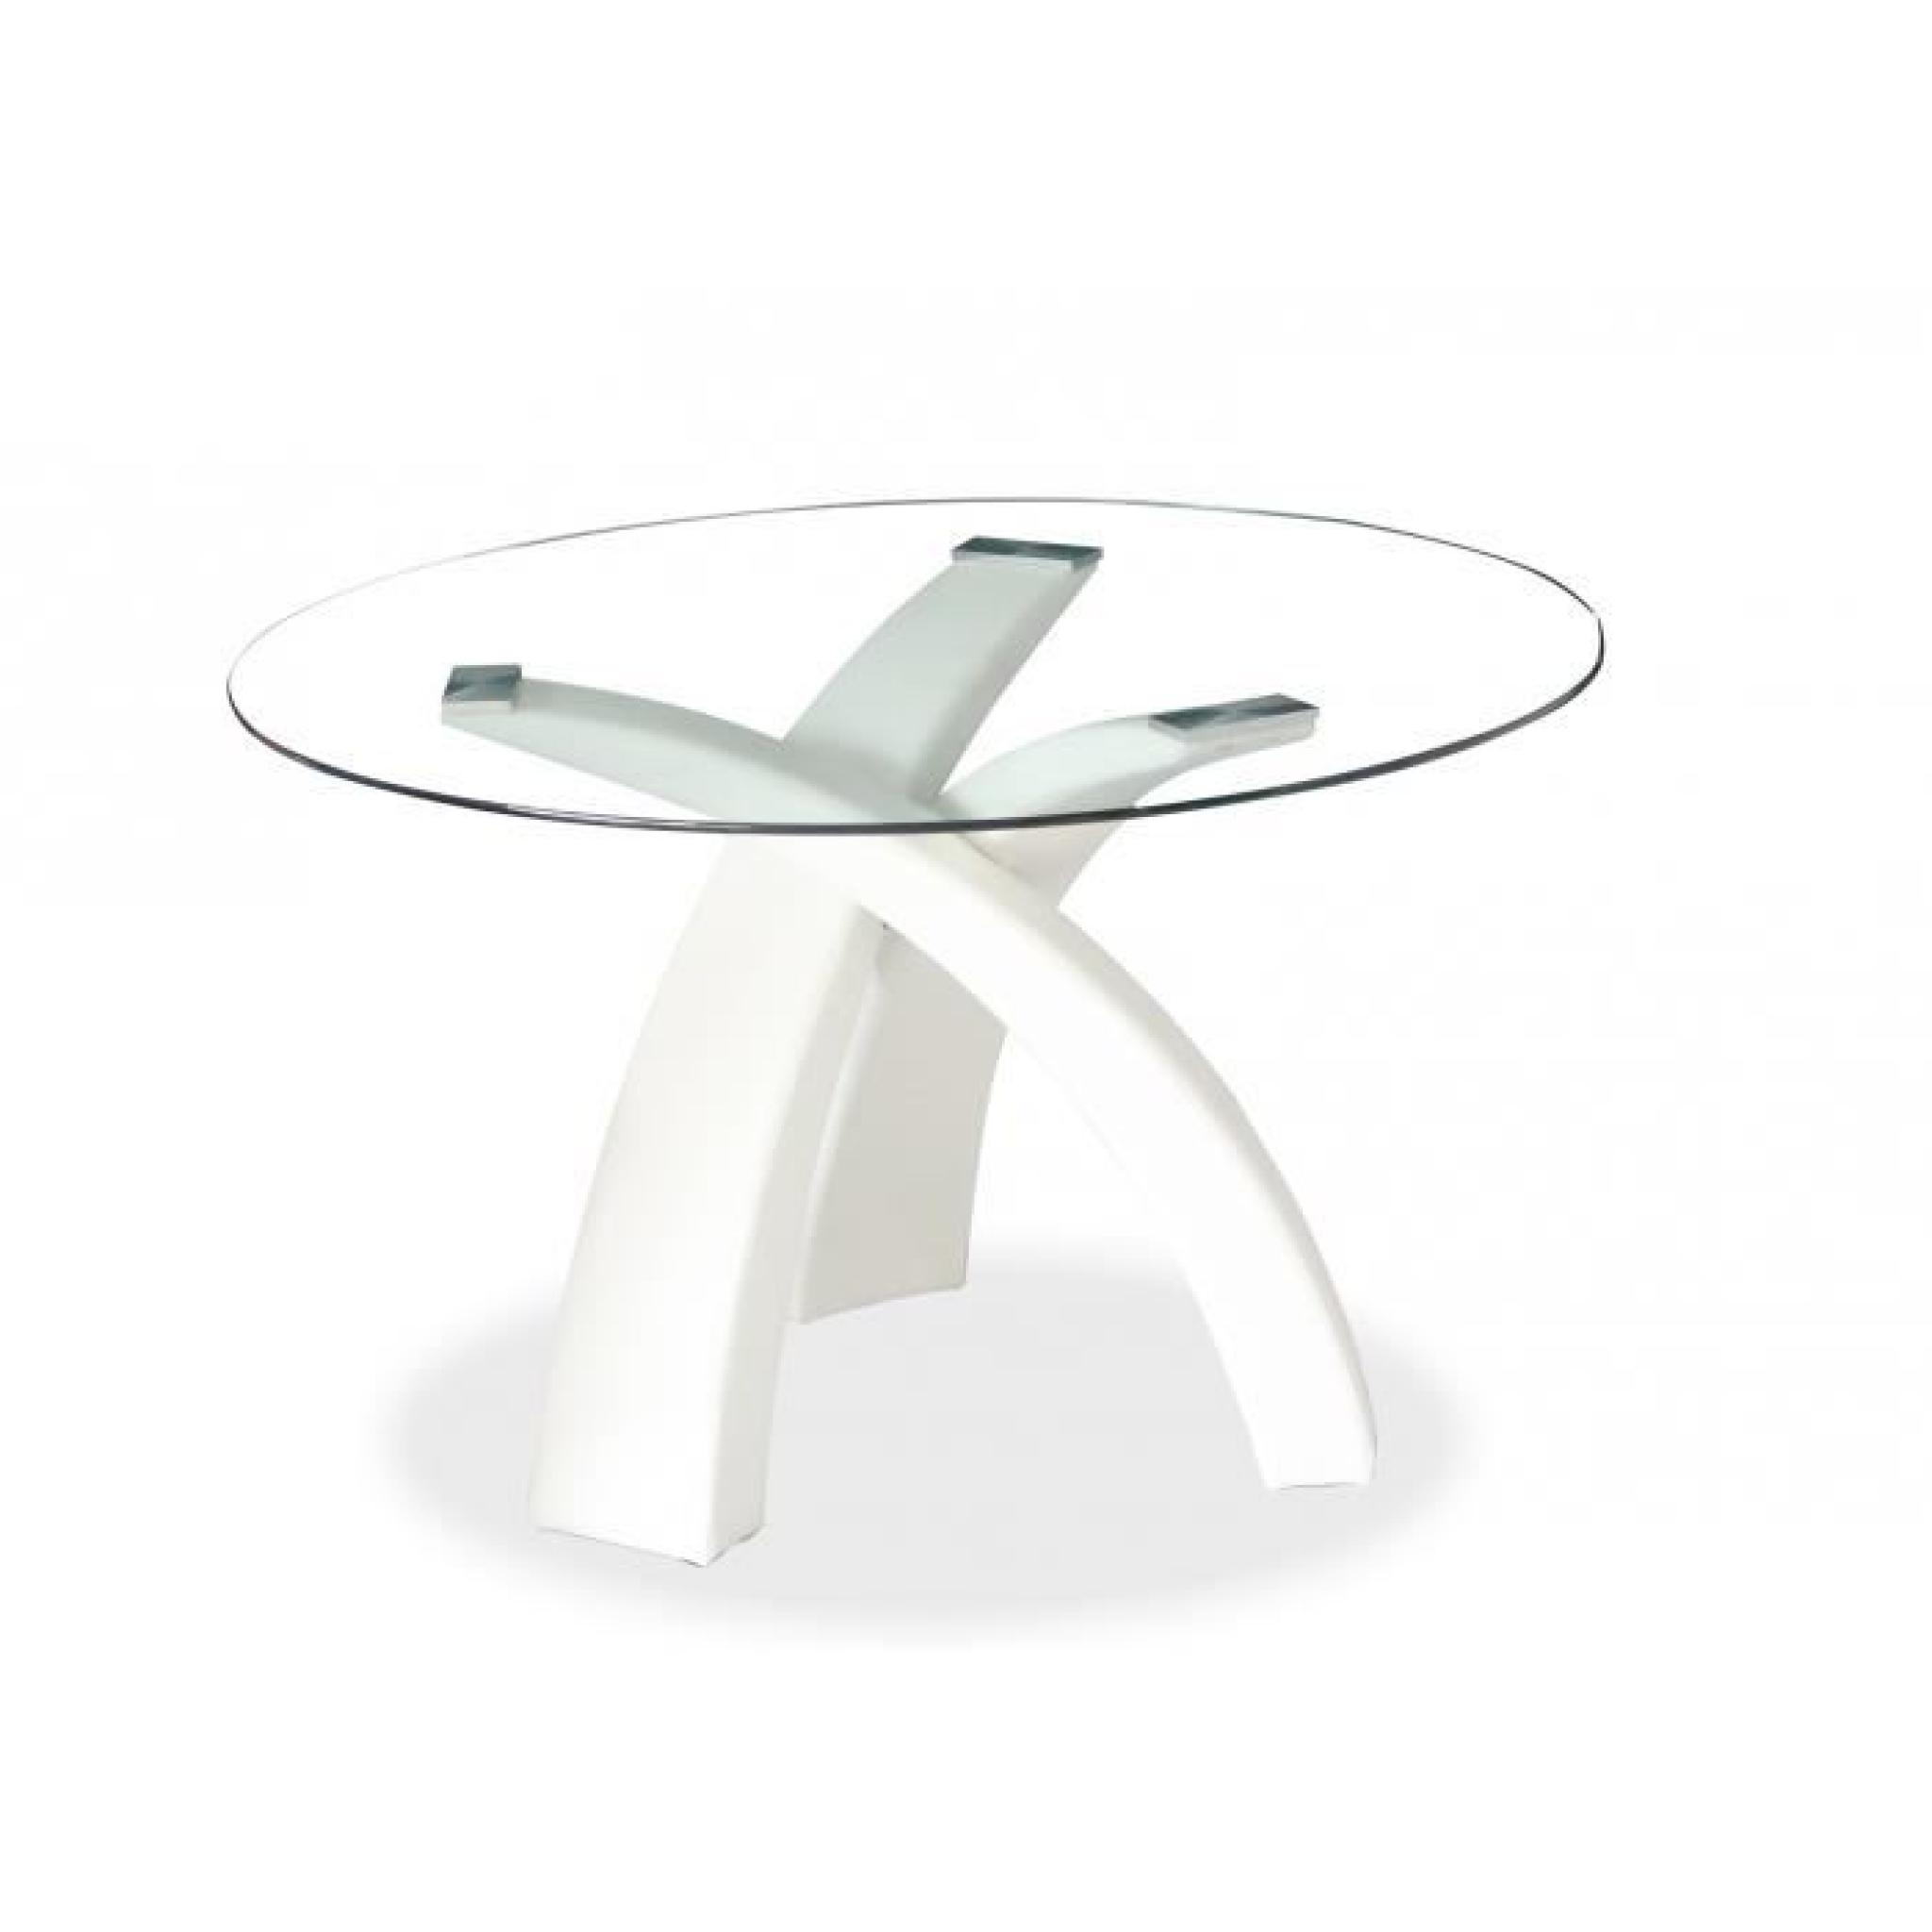 Table manger ronde blanche gore achat vente table for Table ronde a manger